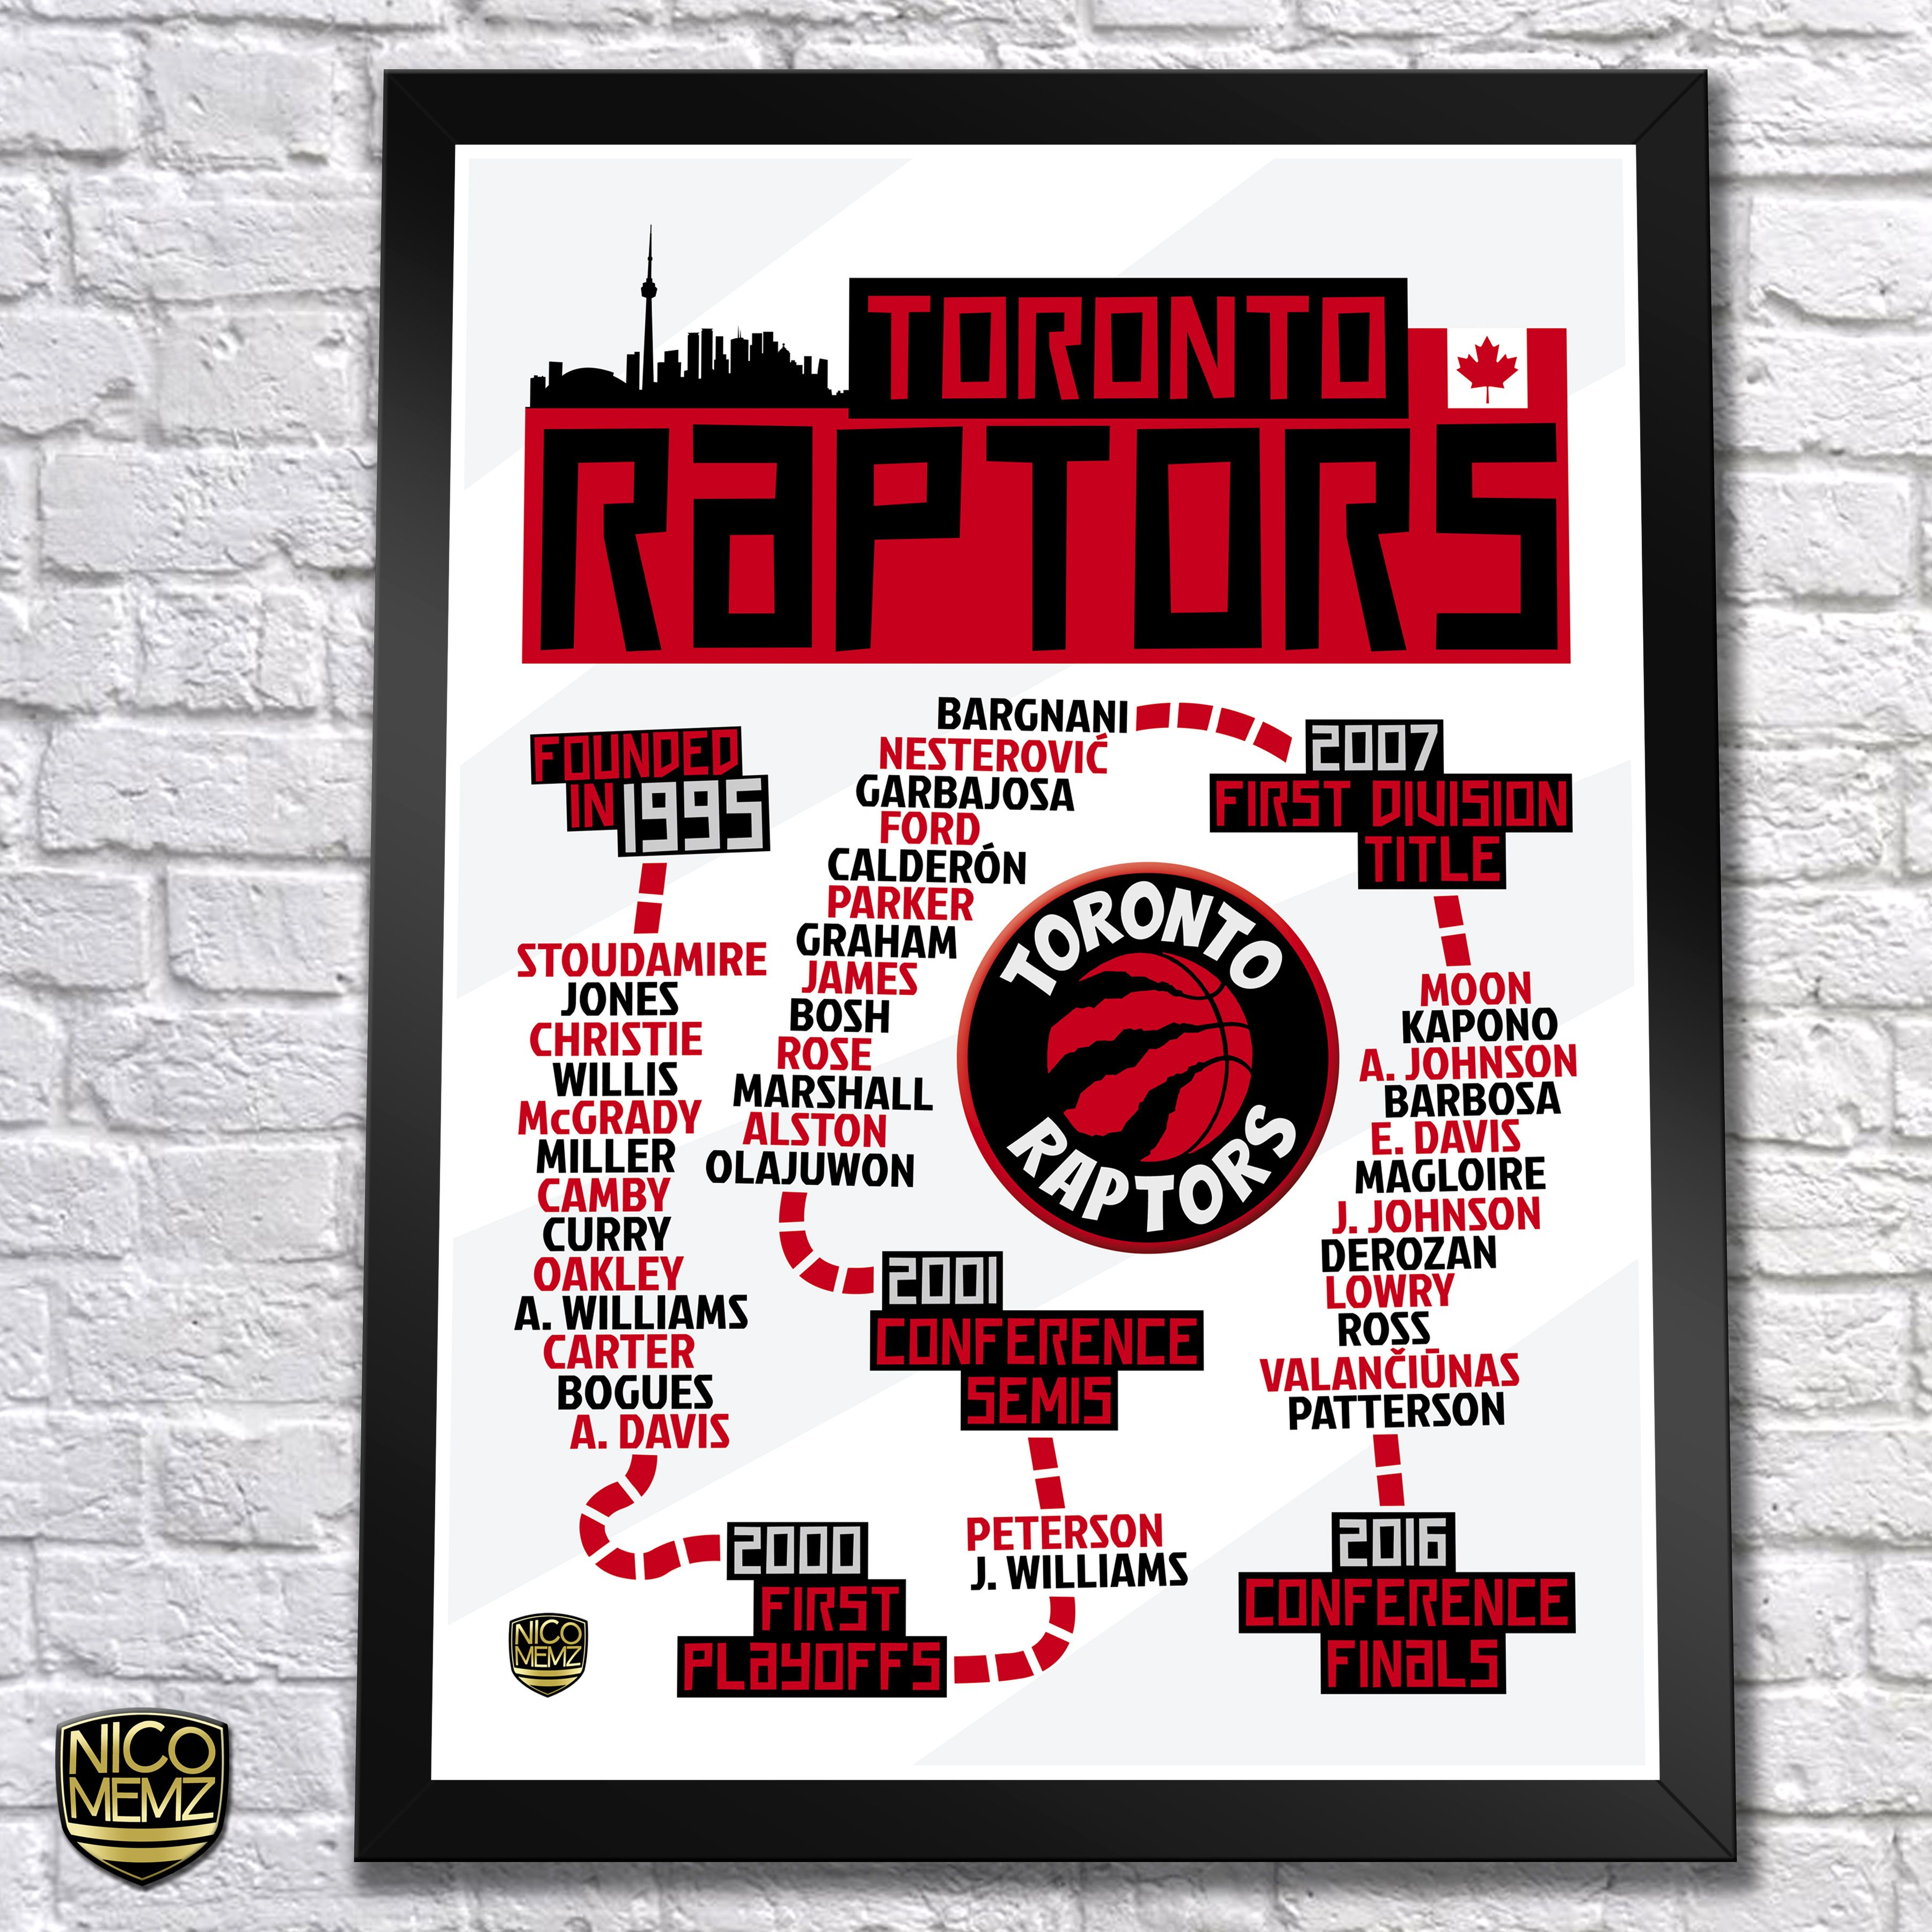 Toronto Raptors History Timeline Poster check it out at